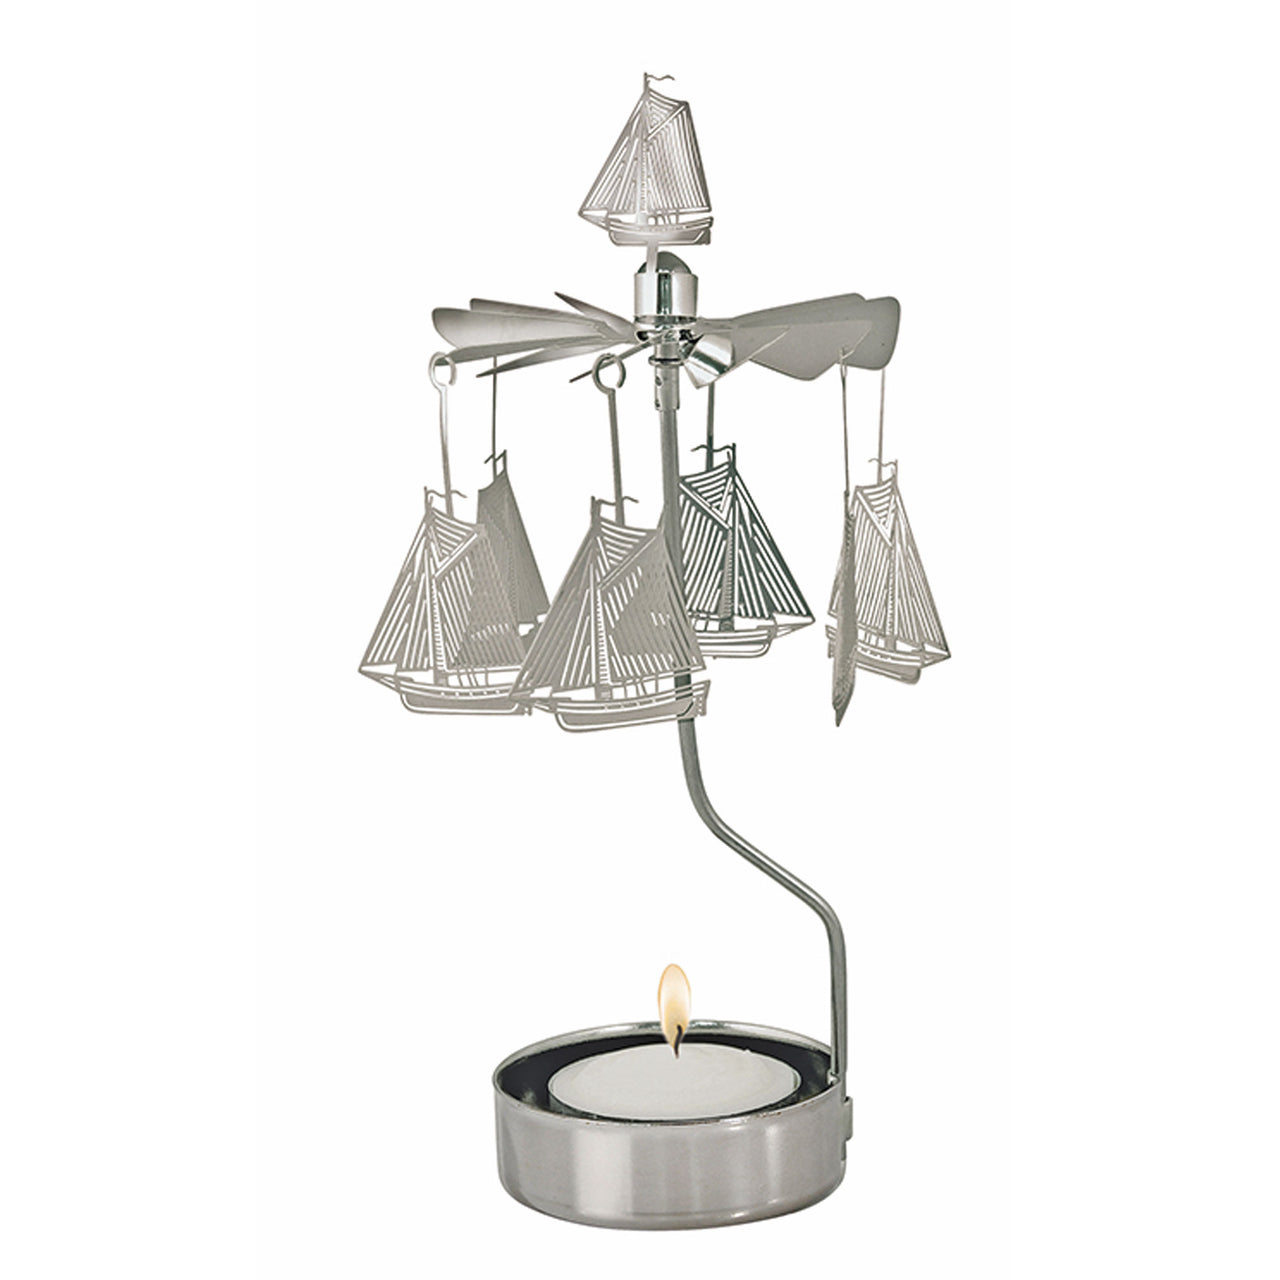 Sailboat Rotary Candle Holder - Northlight Homestore